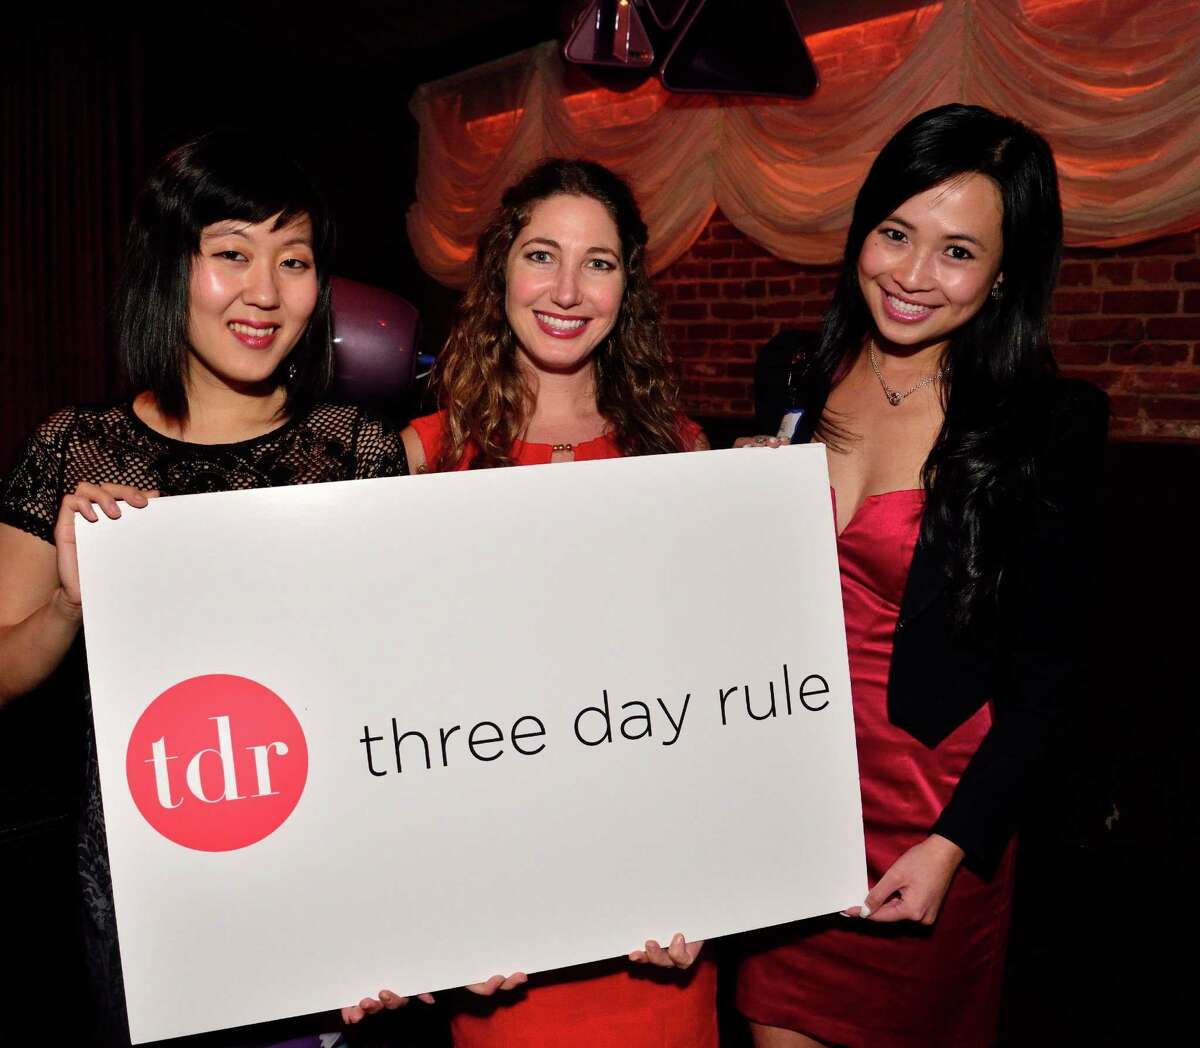 San Francisco's Tina Wie, Carla Swiryn and Louisa Liu, of matchmaking service Three Day Rule, are pictured at a recent event hosted by the company.